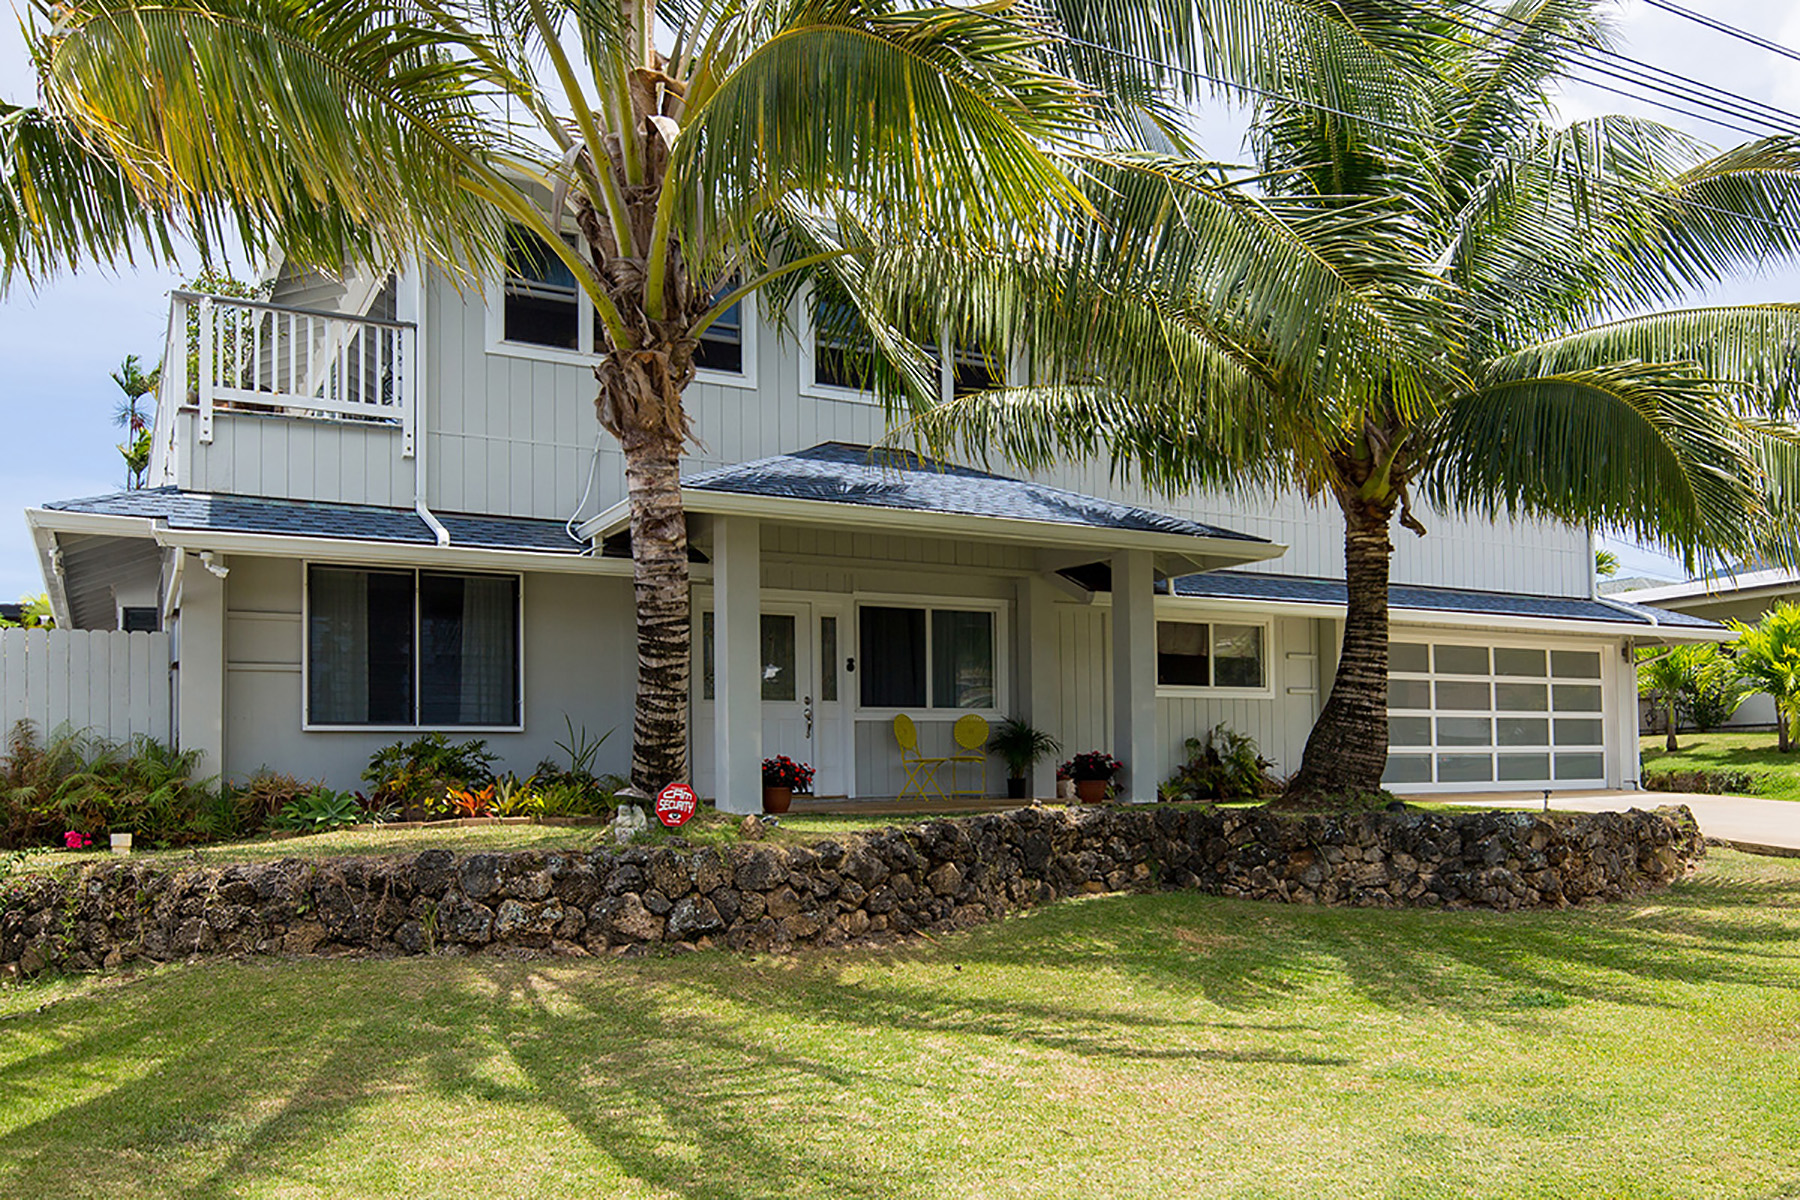 Single Family Home for Sale at Luxury by the Sea 45-052 Ka Hanahou Place Kaneohe, Hawaii 96744 United States